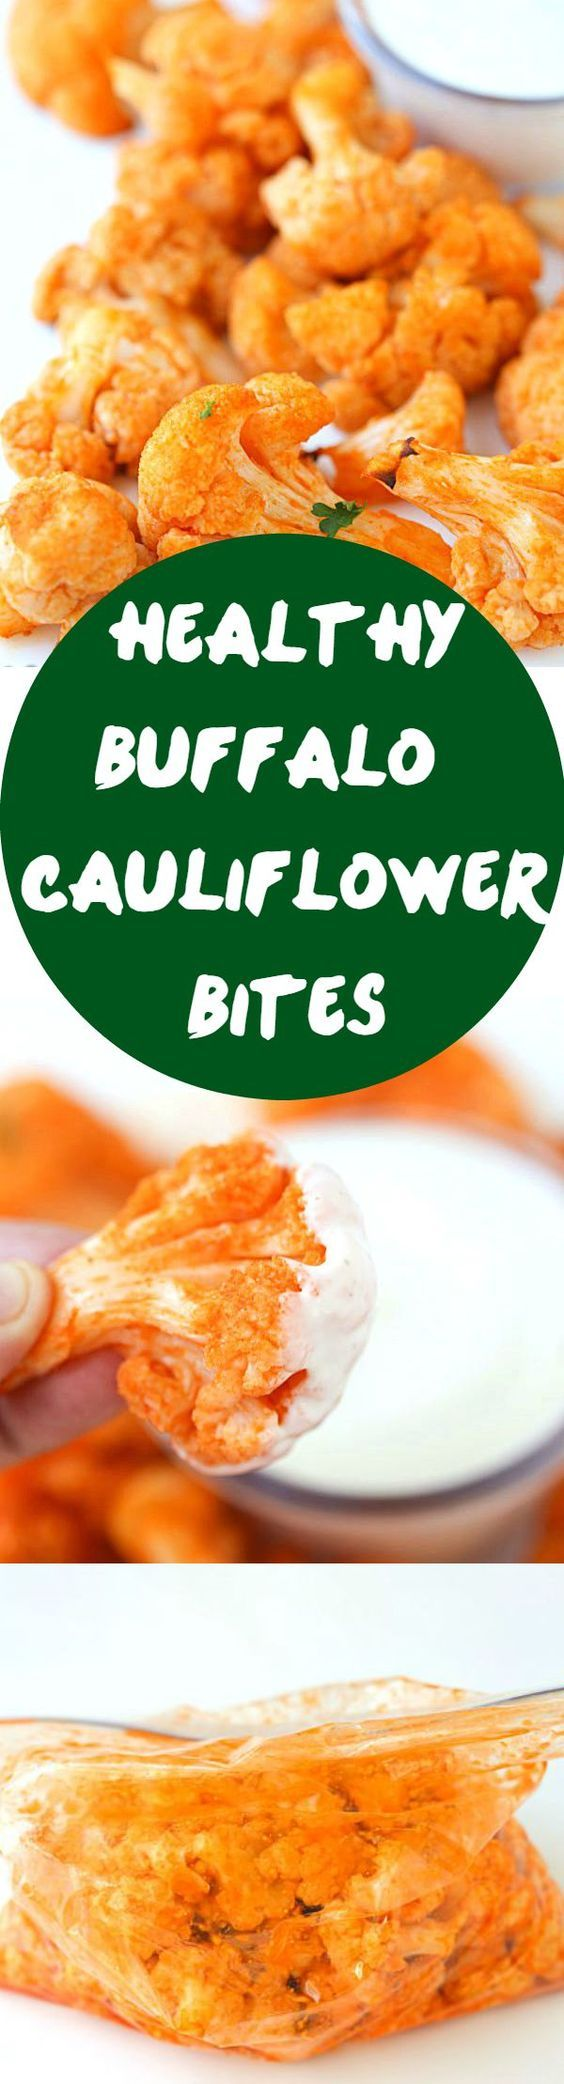 Healthy Buffalo Cauliflower Bites - These bites are addicting spicy (to some) and surprisingly fantastic! If you love a delicious buffalo chicken dip these bites are for you!